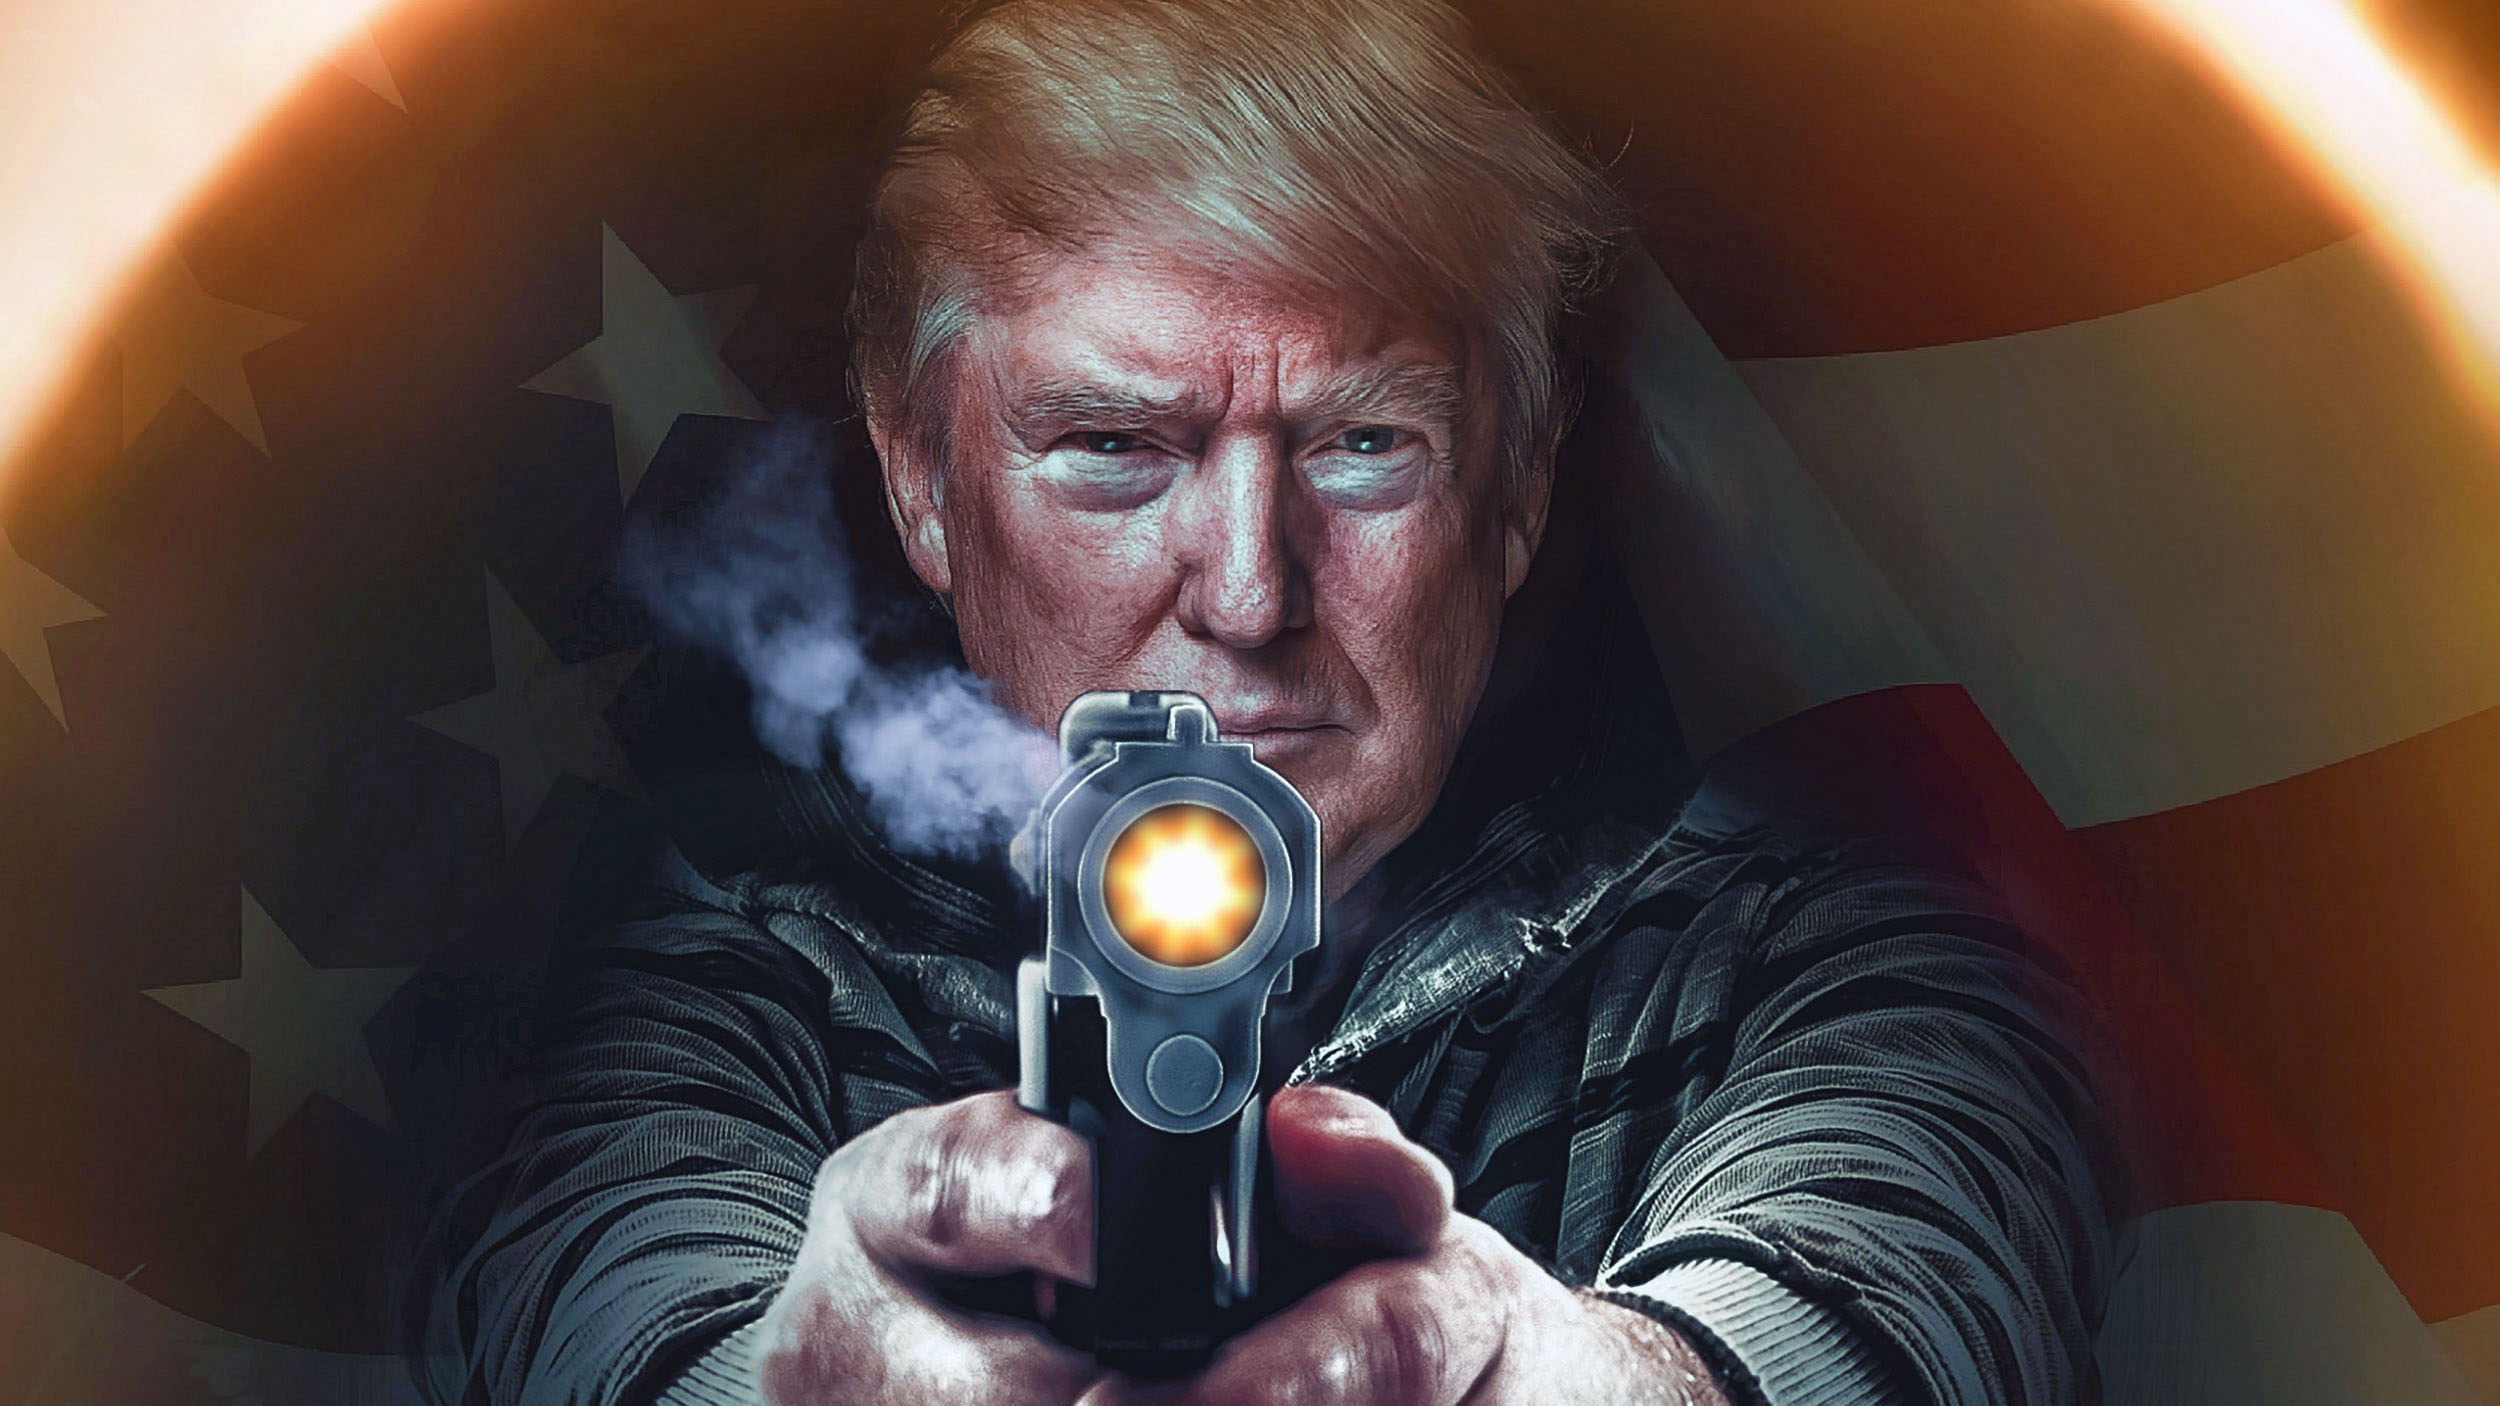 Donald Trump Hd Others 4k Wallpapers Images Backgrounds